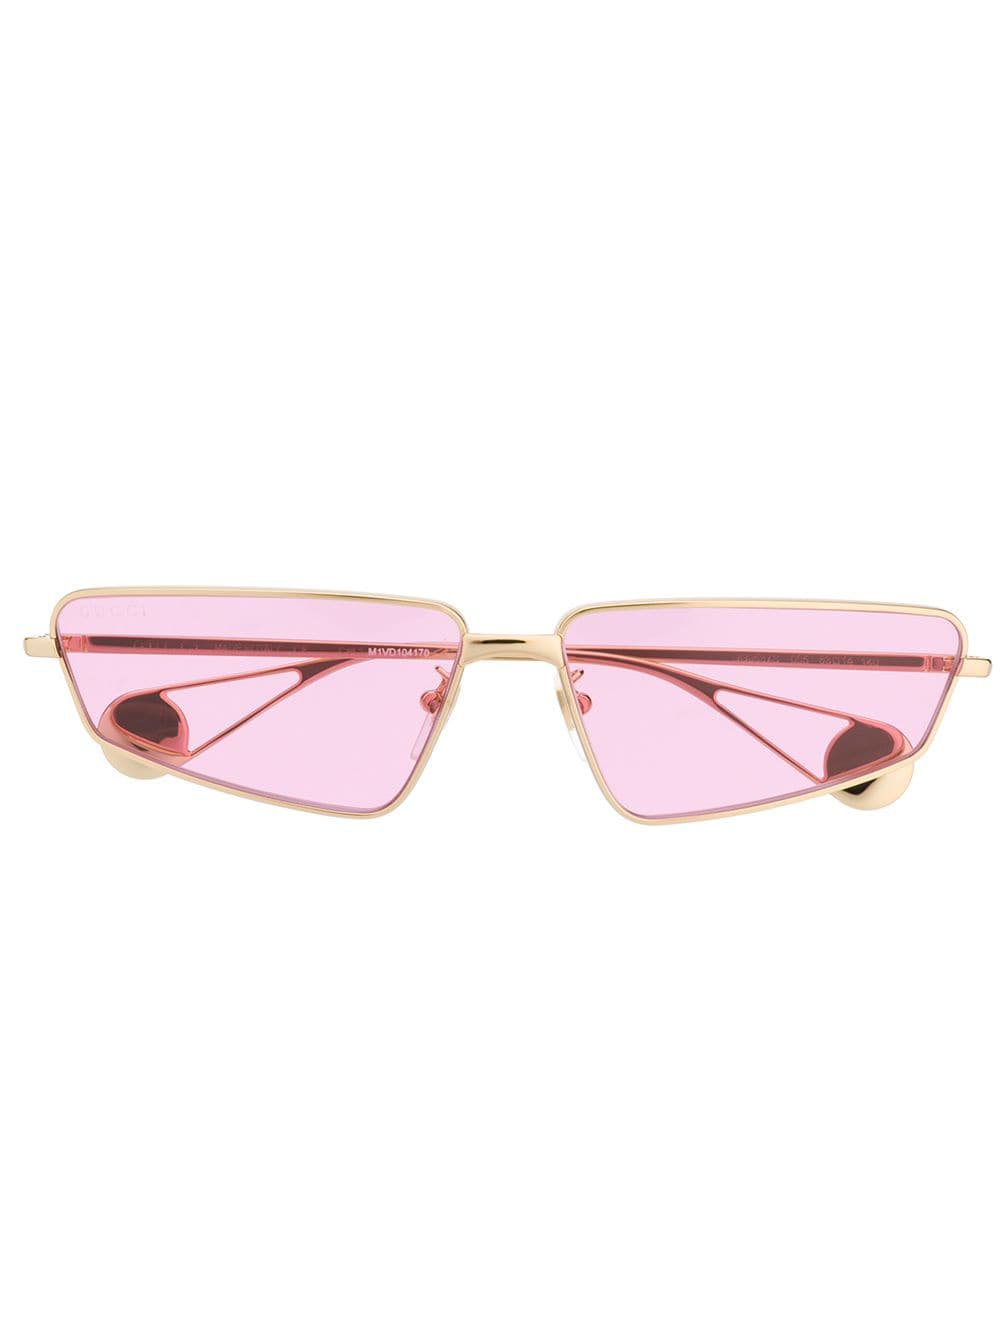 Gucci Eyewear Rectangle Frame Sunglasses - Farfetch